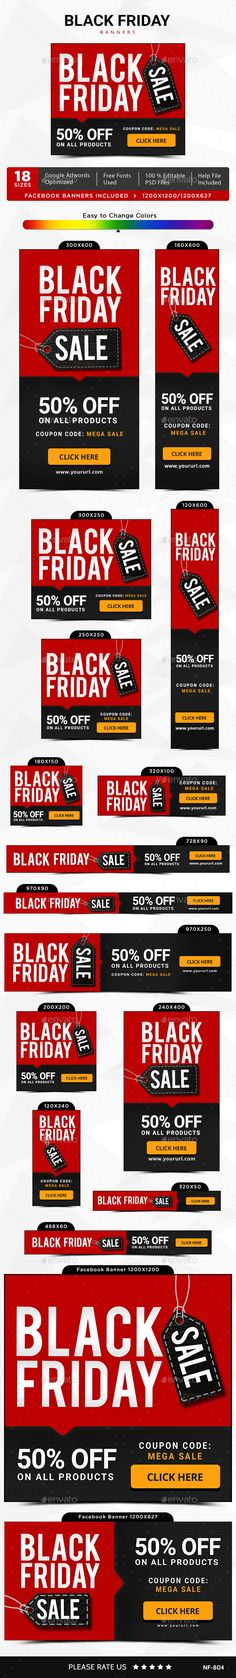 Black Friday Web Banners Template PSD #design #ads #promotion Download: http://graphicriver.net/item/black-friday-banners/13541961?ref=ksioks